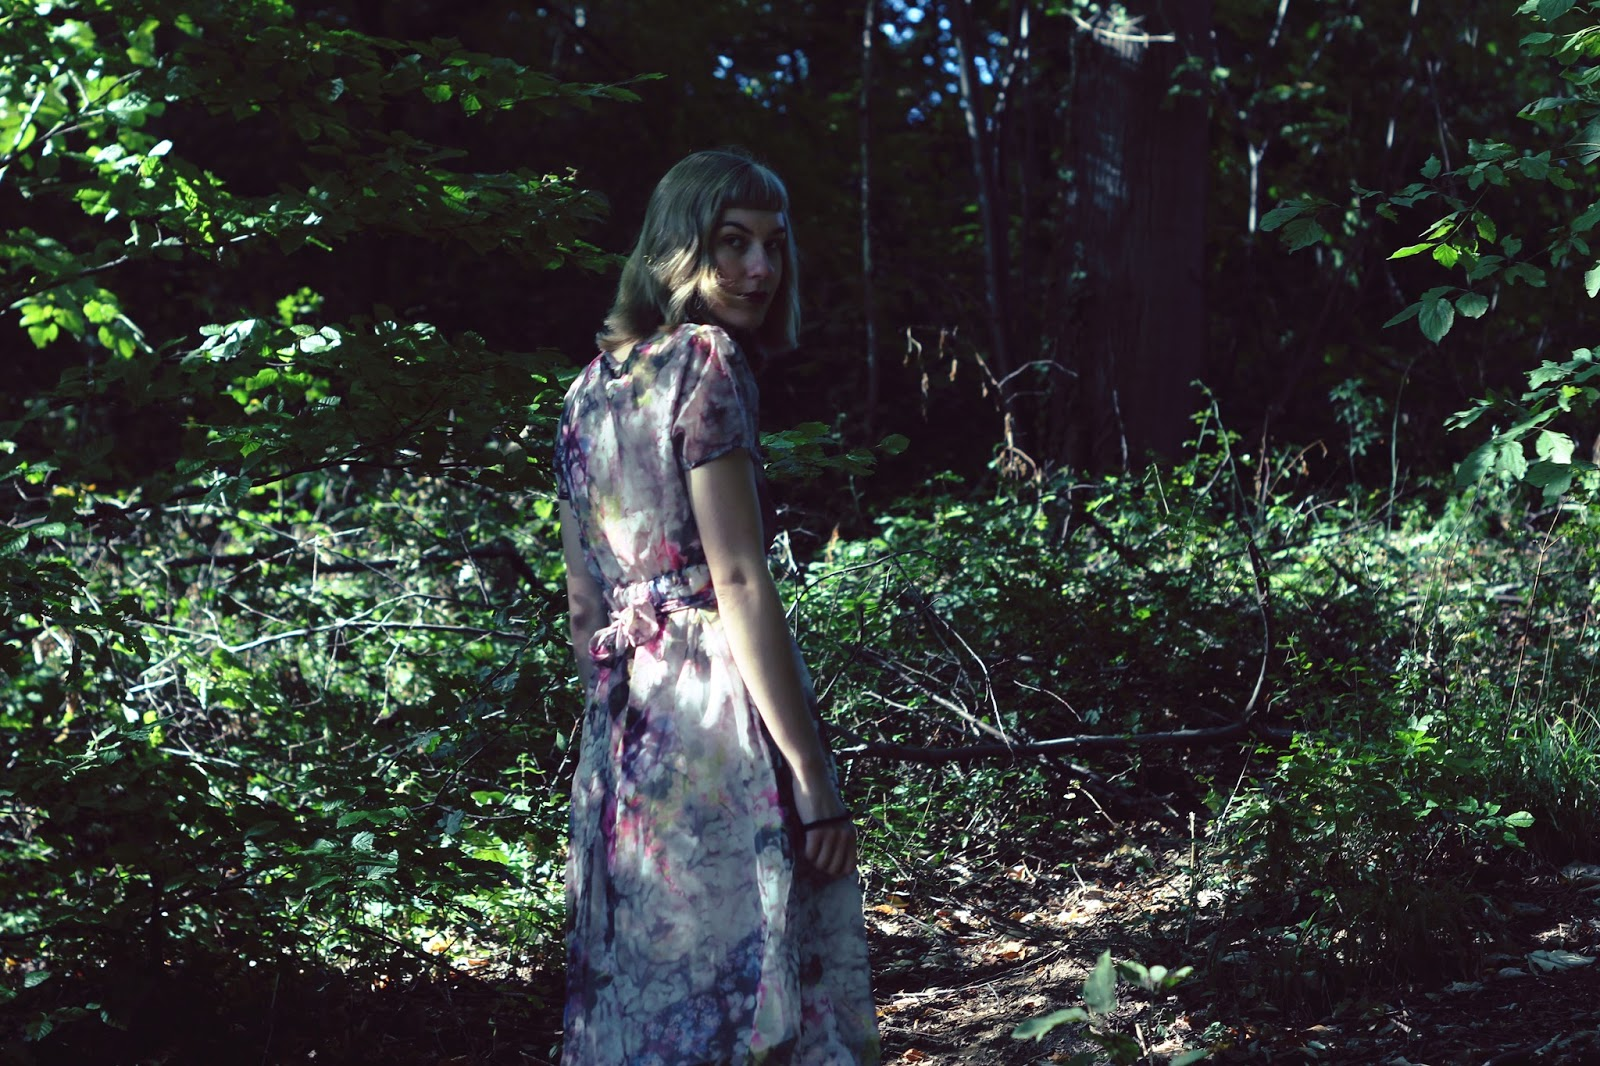 filipa canic, filipa canic blog, youarethepoet, you are the poet blog, rosegal, floral dress, forest